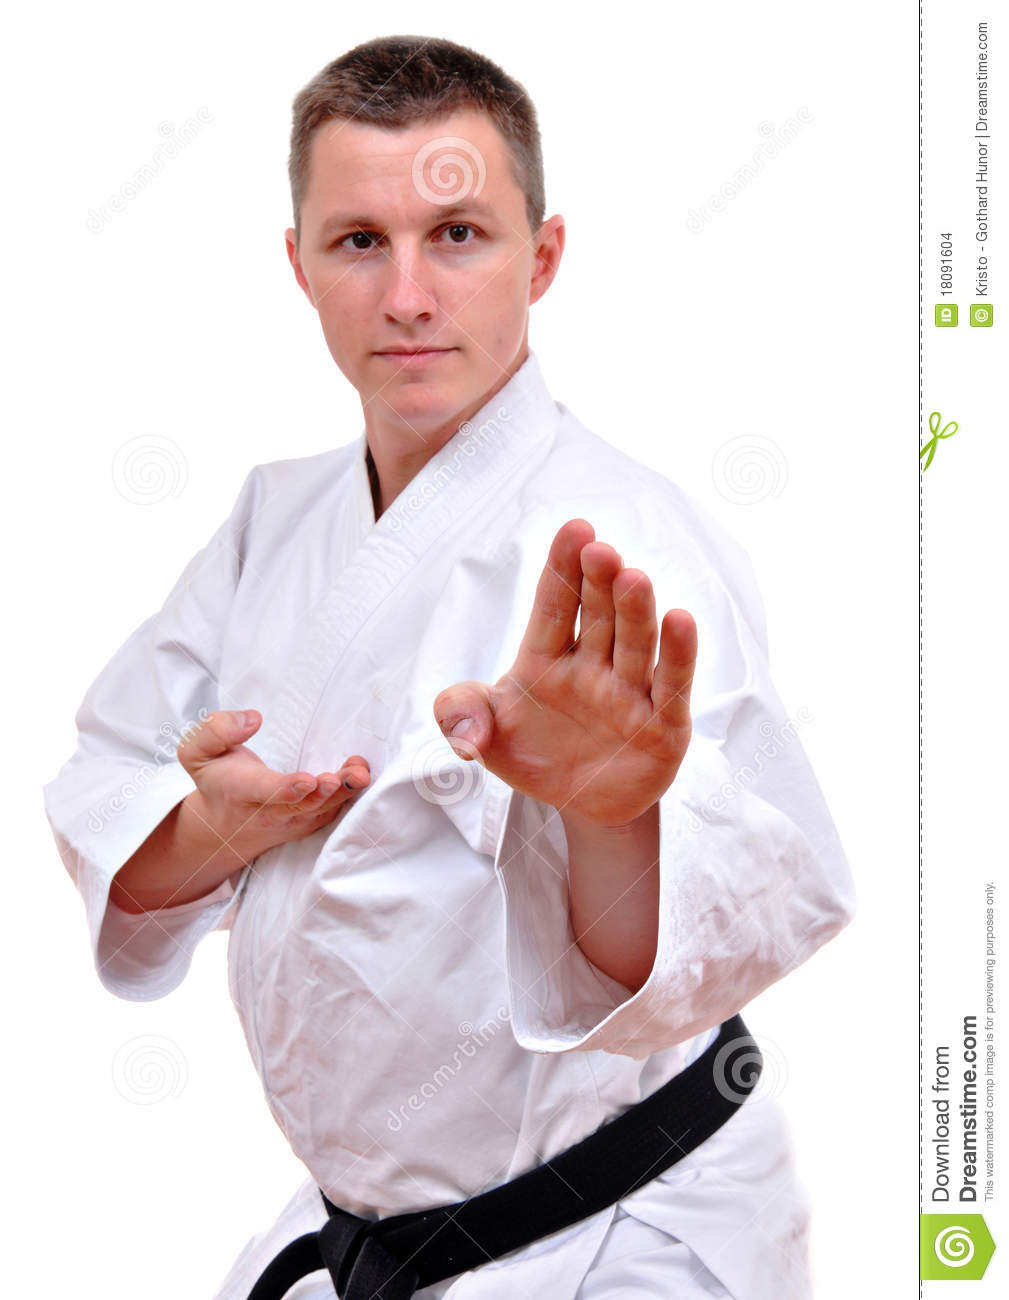 Karate fighting stock photo. Image of male, handsome ...